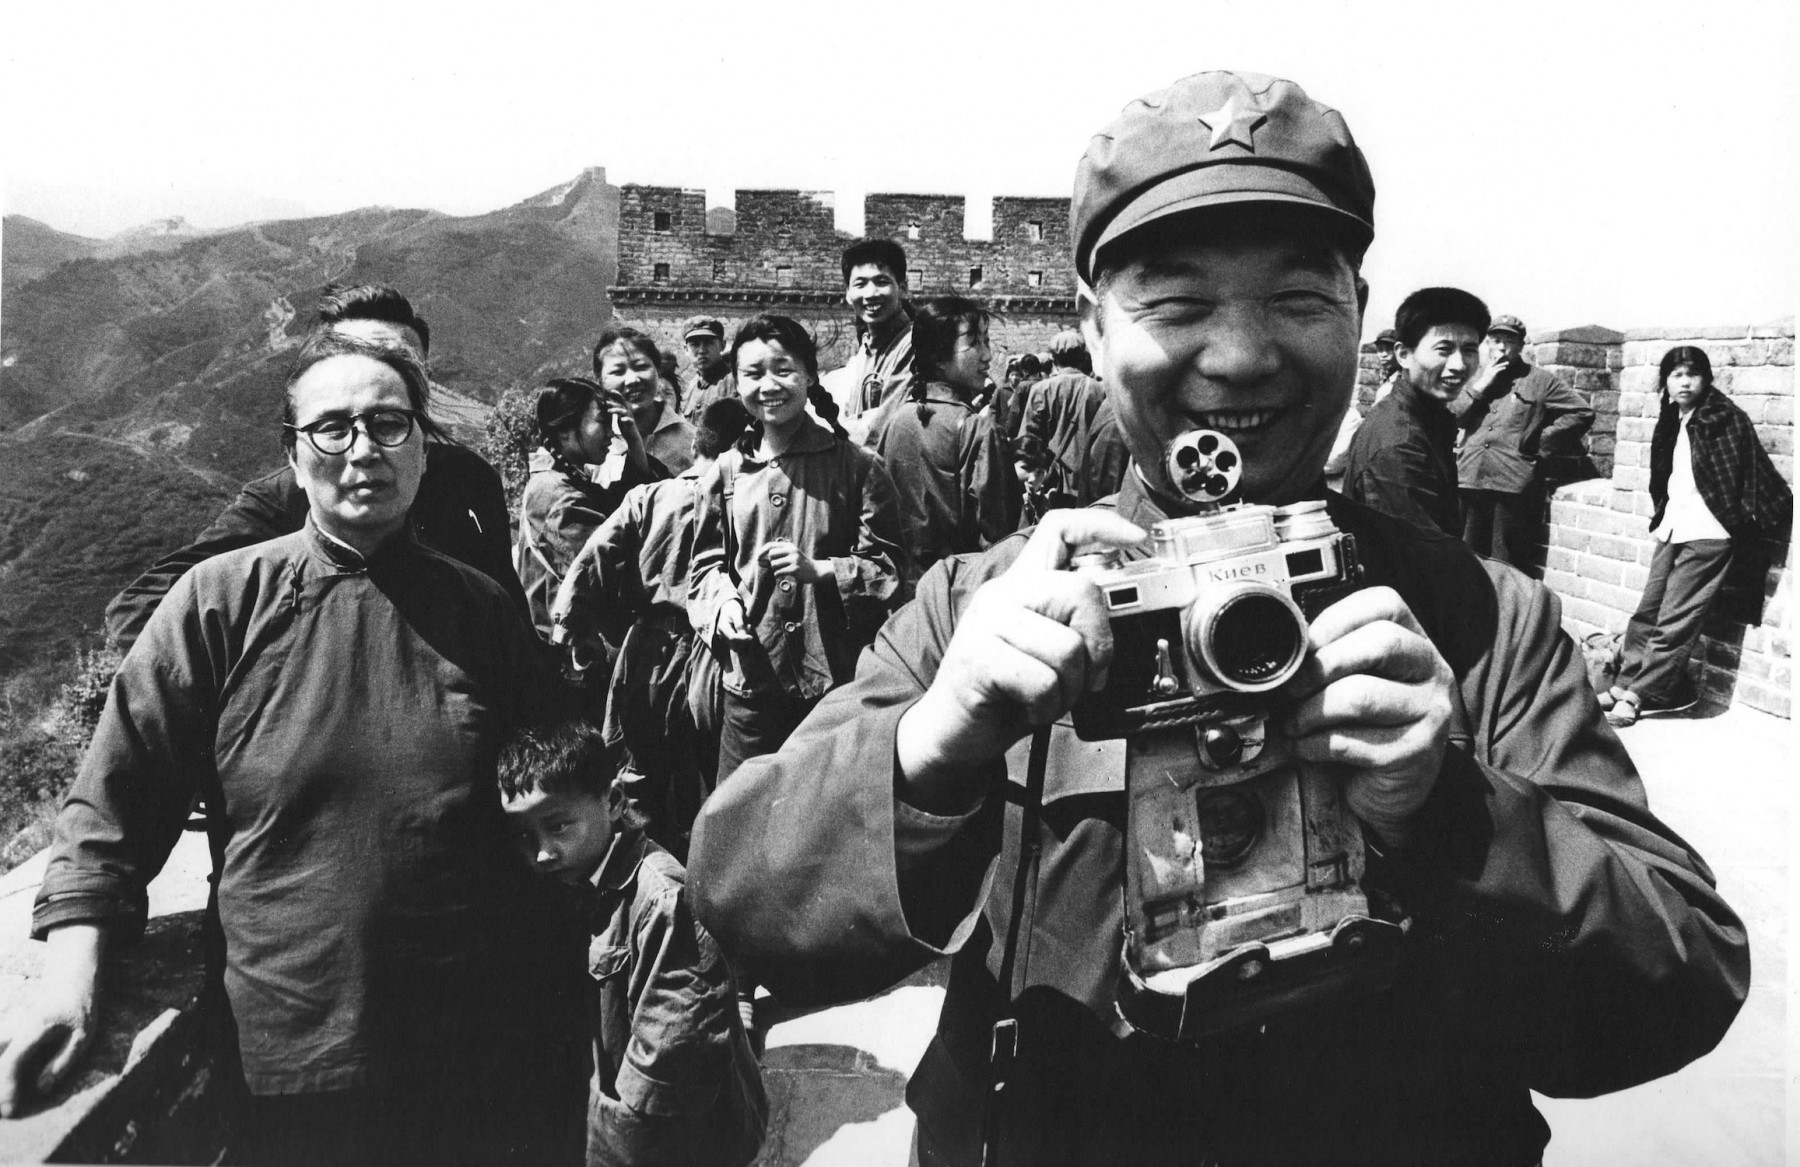 On the Great Wall, 1973